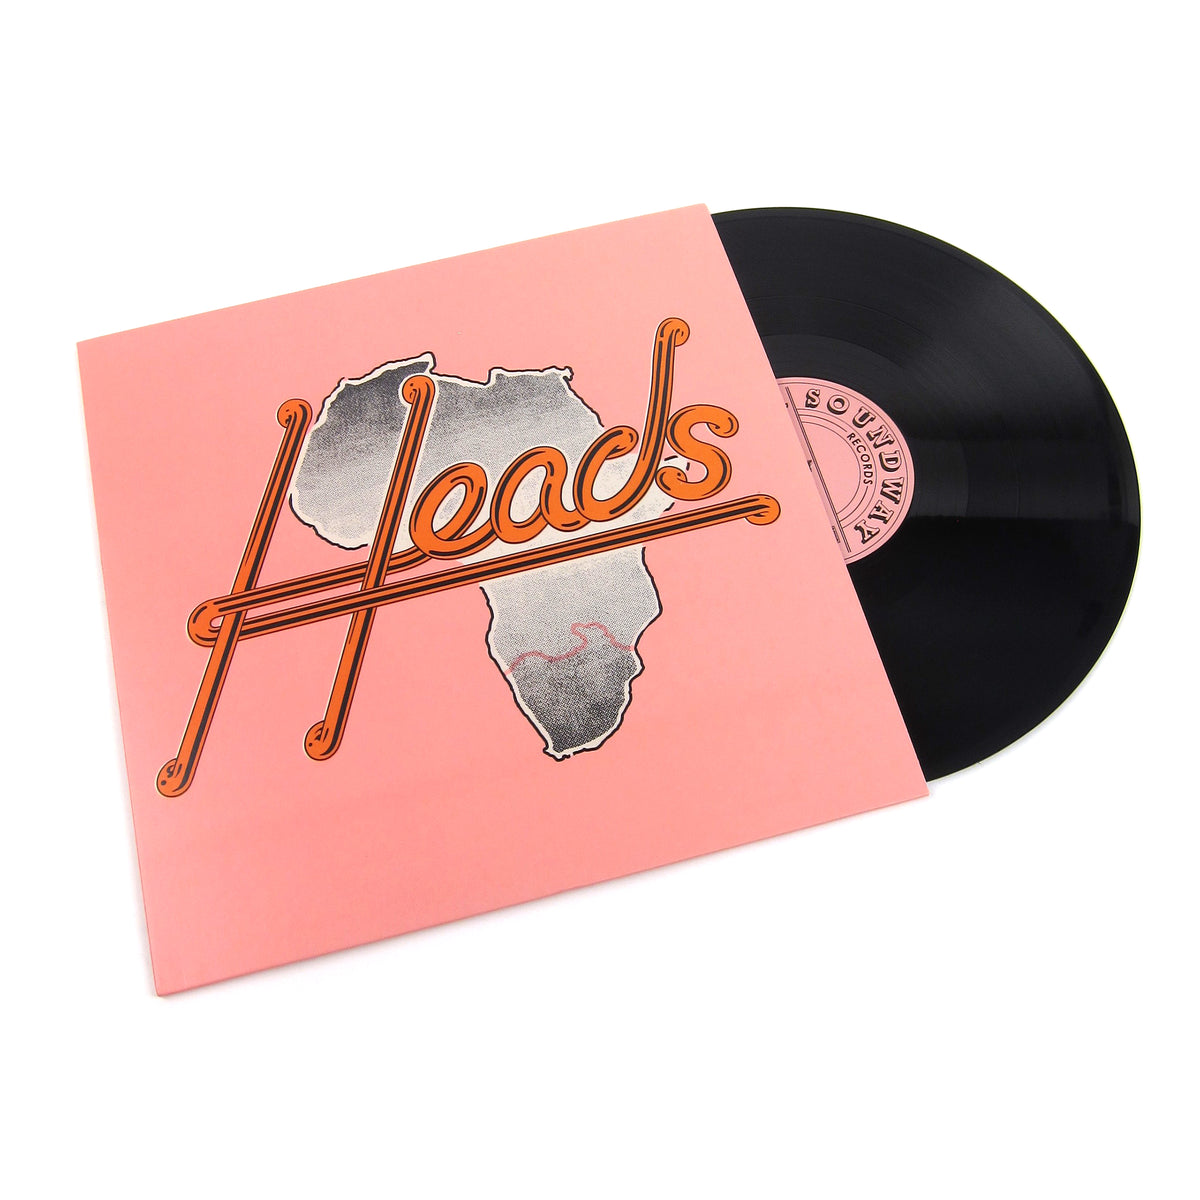 Heads Records: South African Disco Dub Edits Vinyl 12""